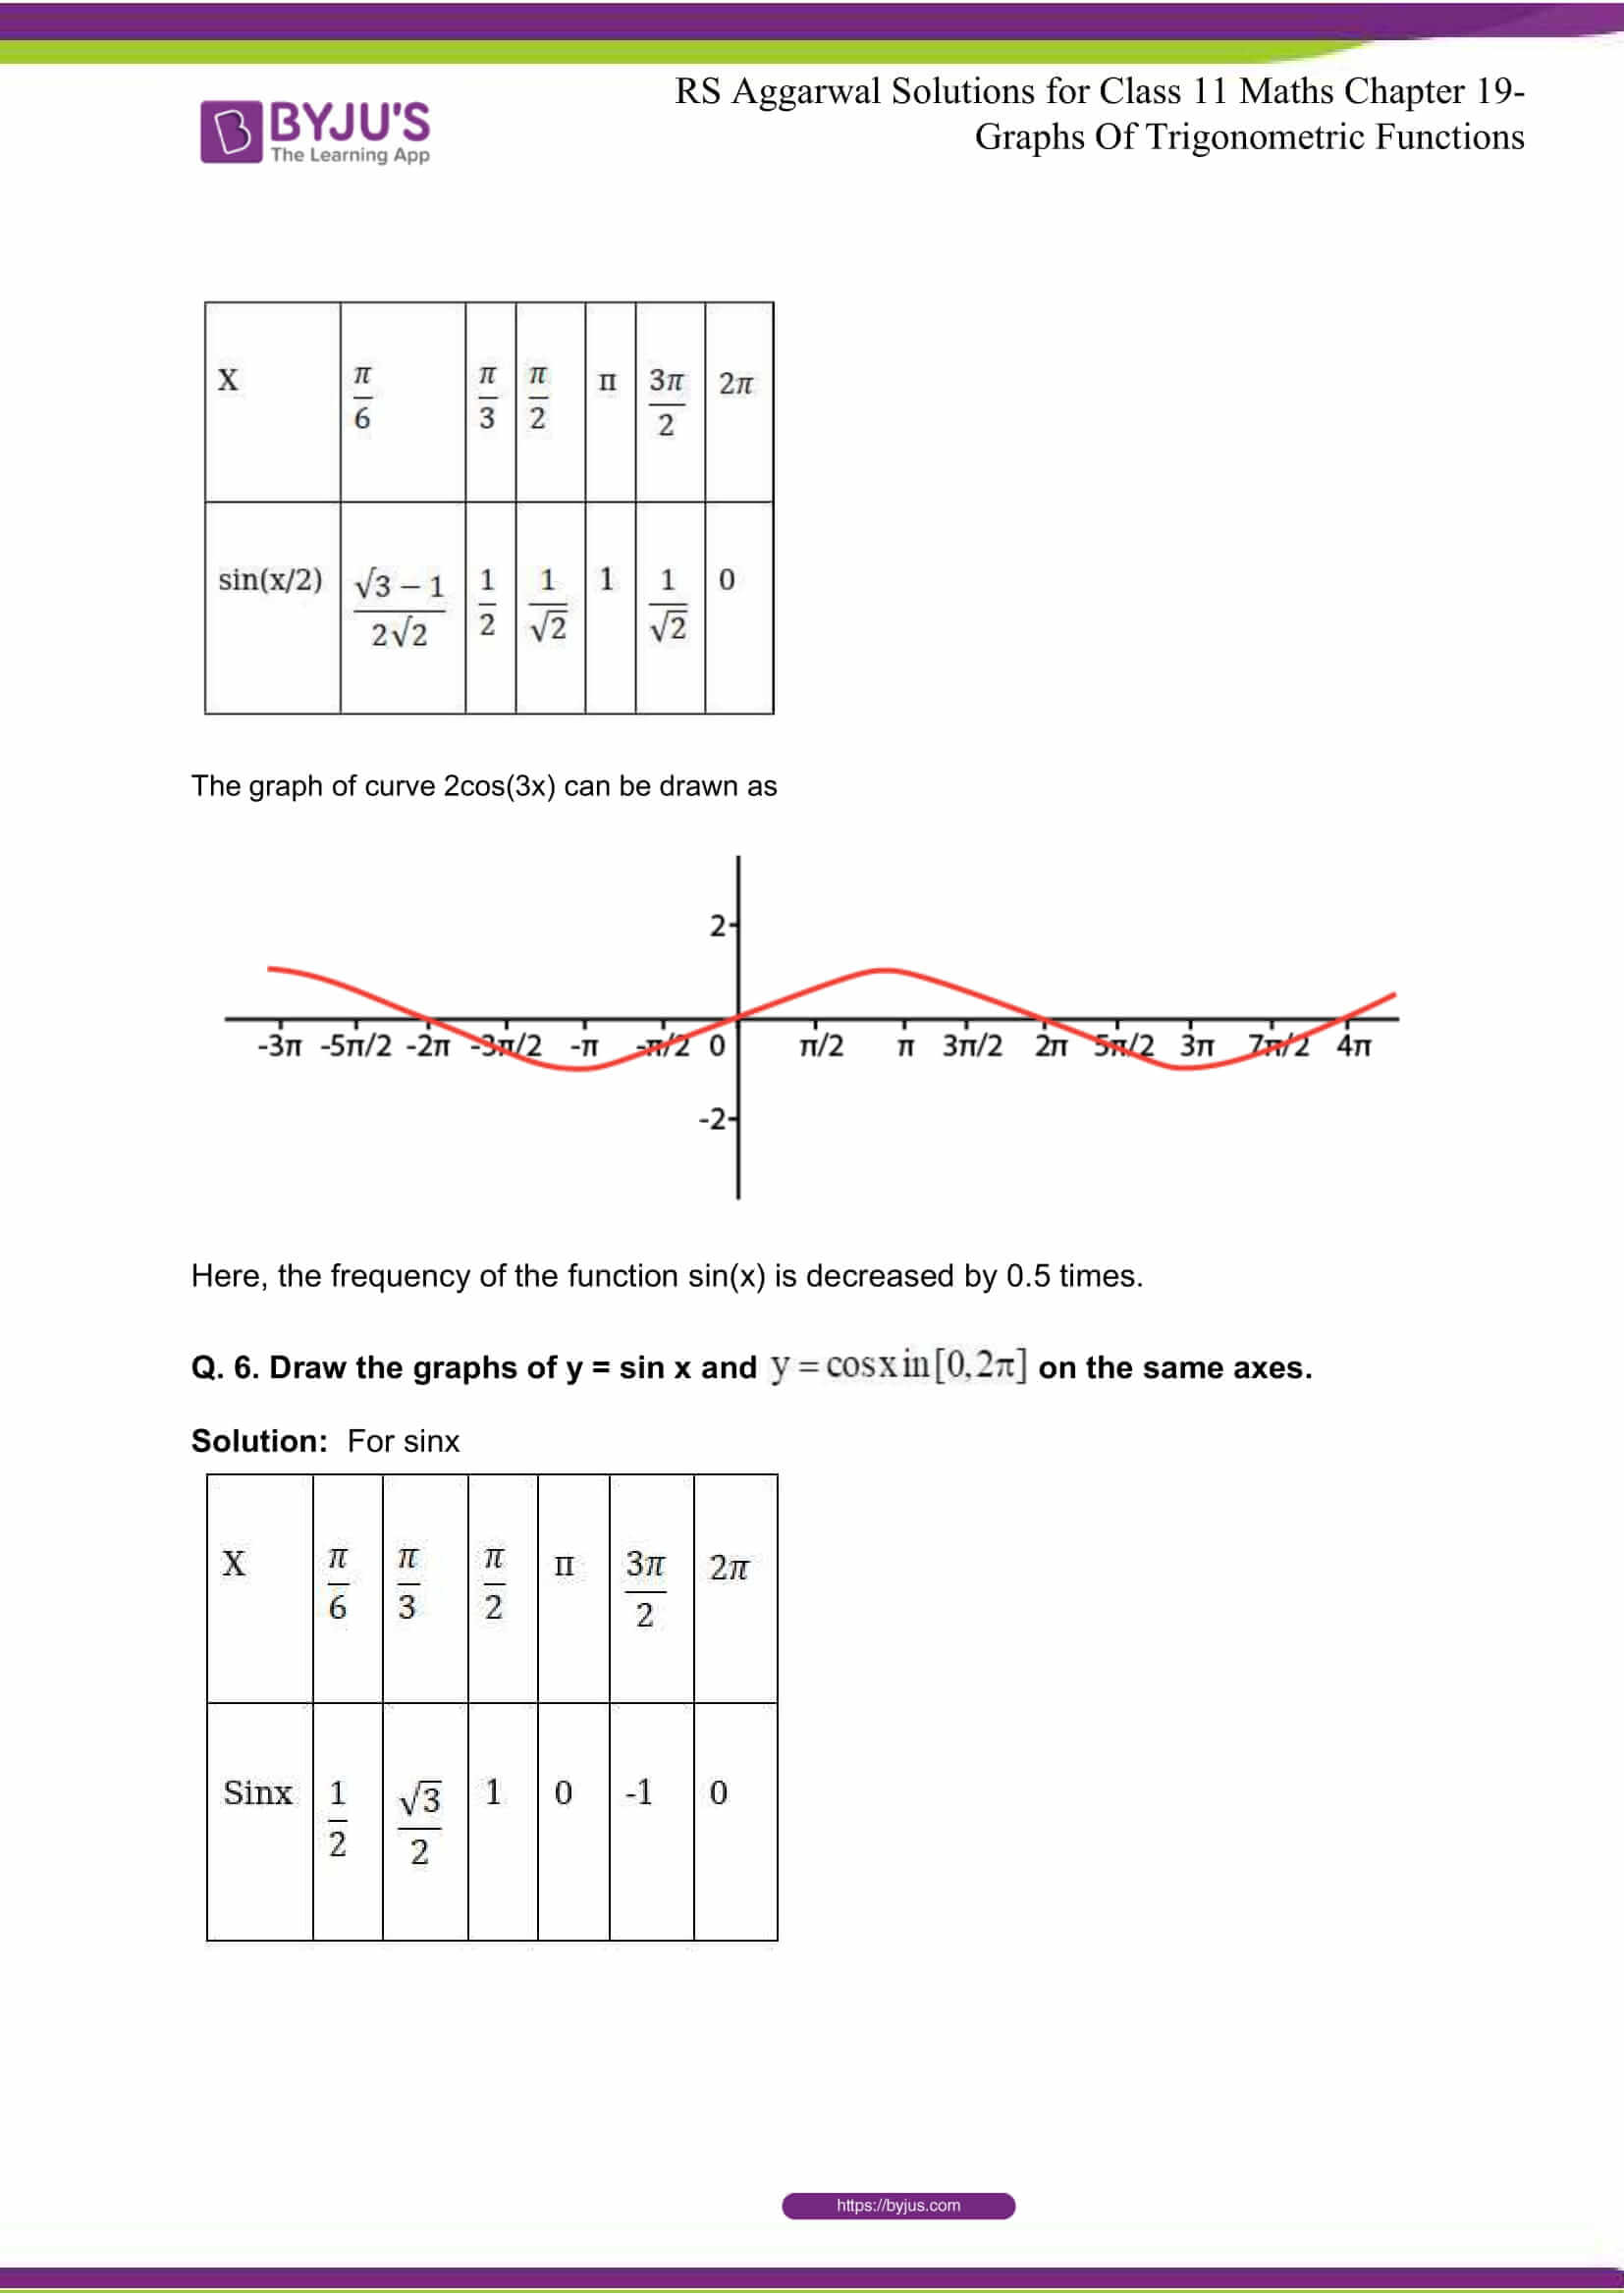 rsaggarwal solutions class 11 maths chapter 19 5